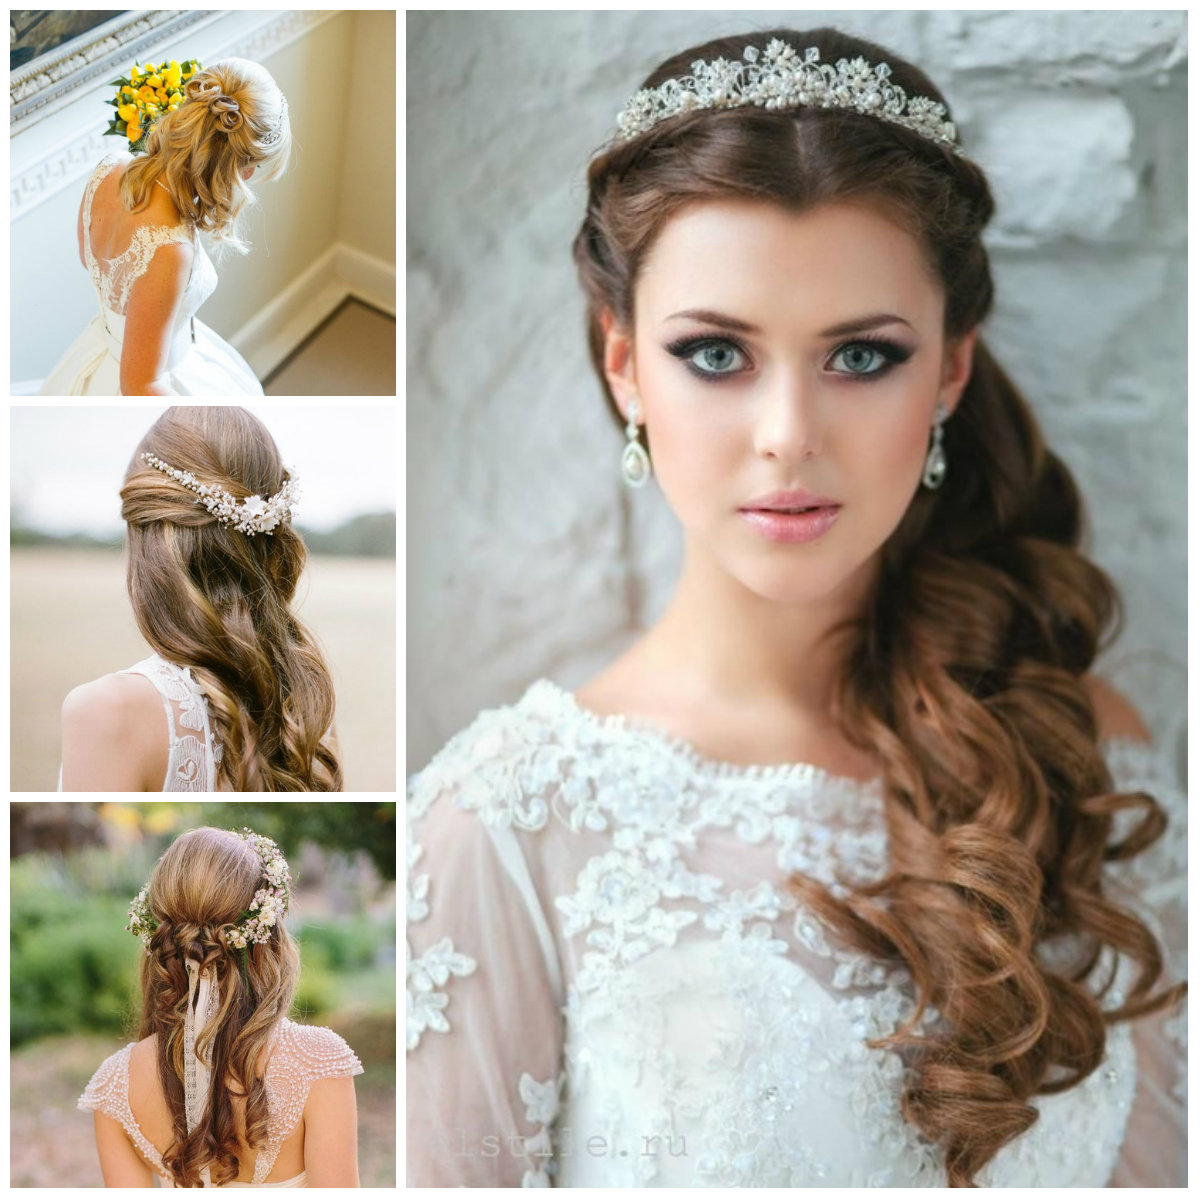 Wedding Hairstyles 2019: 2019 Haircuts, Hairstyles And Hair Colors